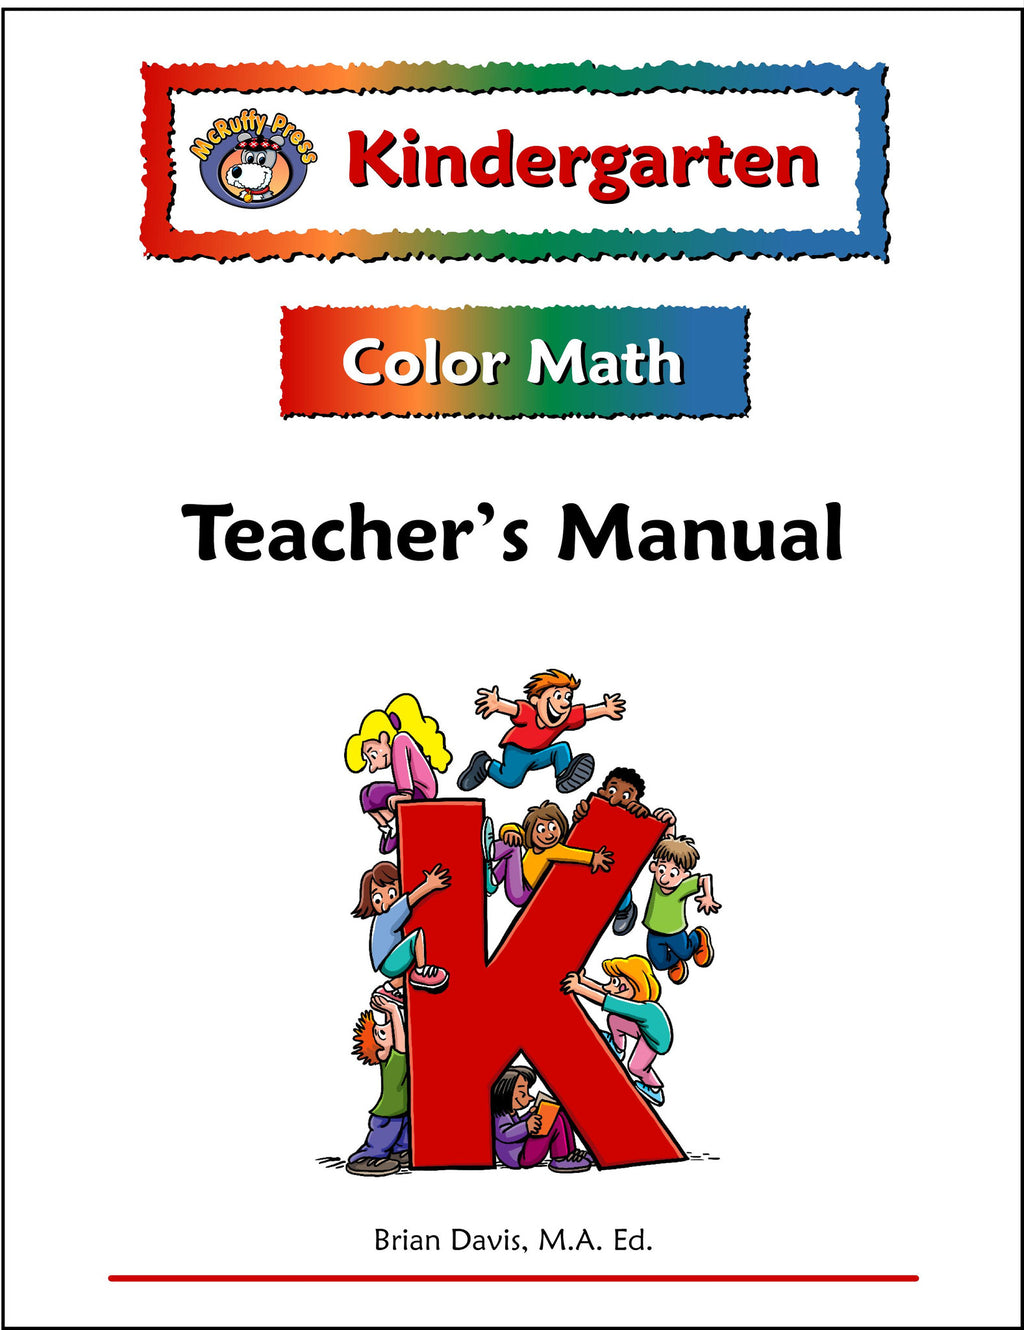 Kindergarten Color Math Teacher's Manual - McRuffy Press